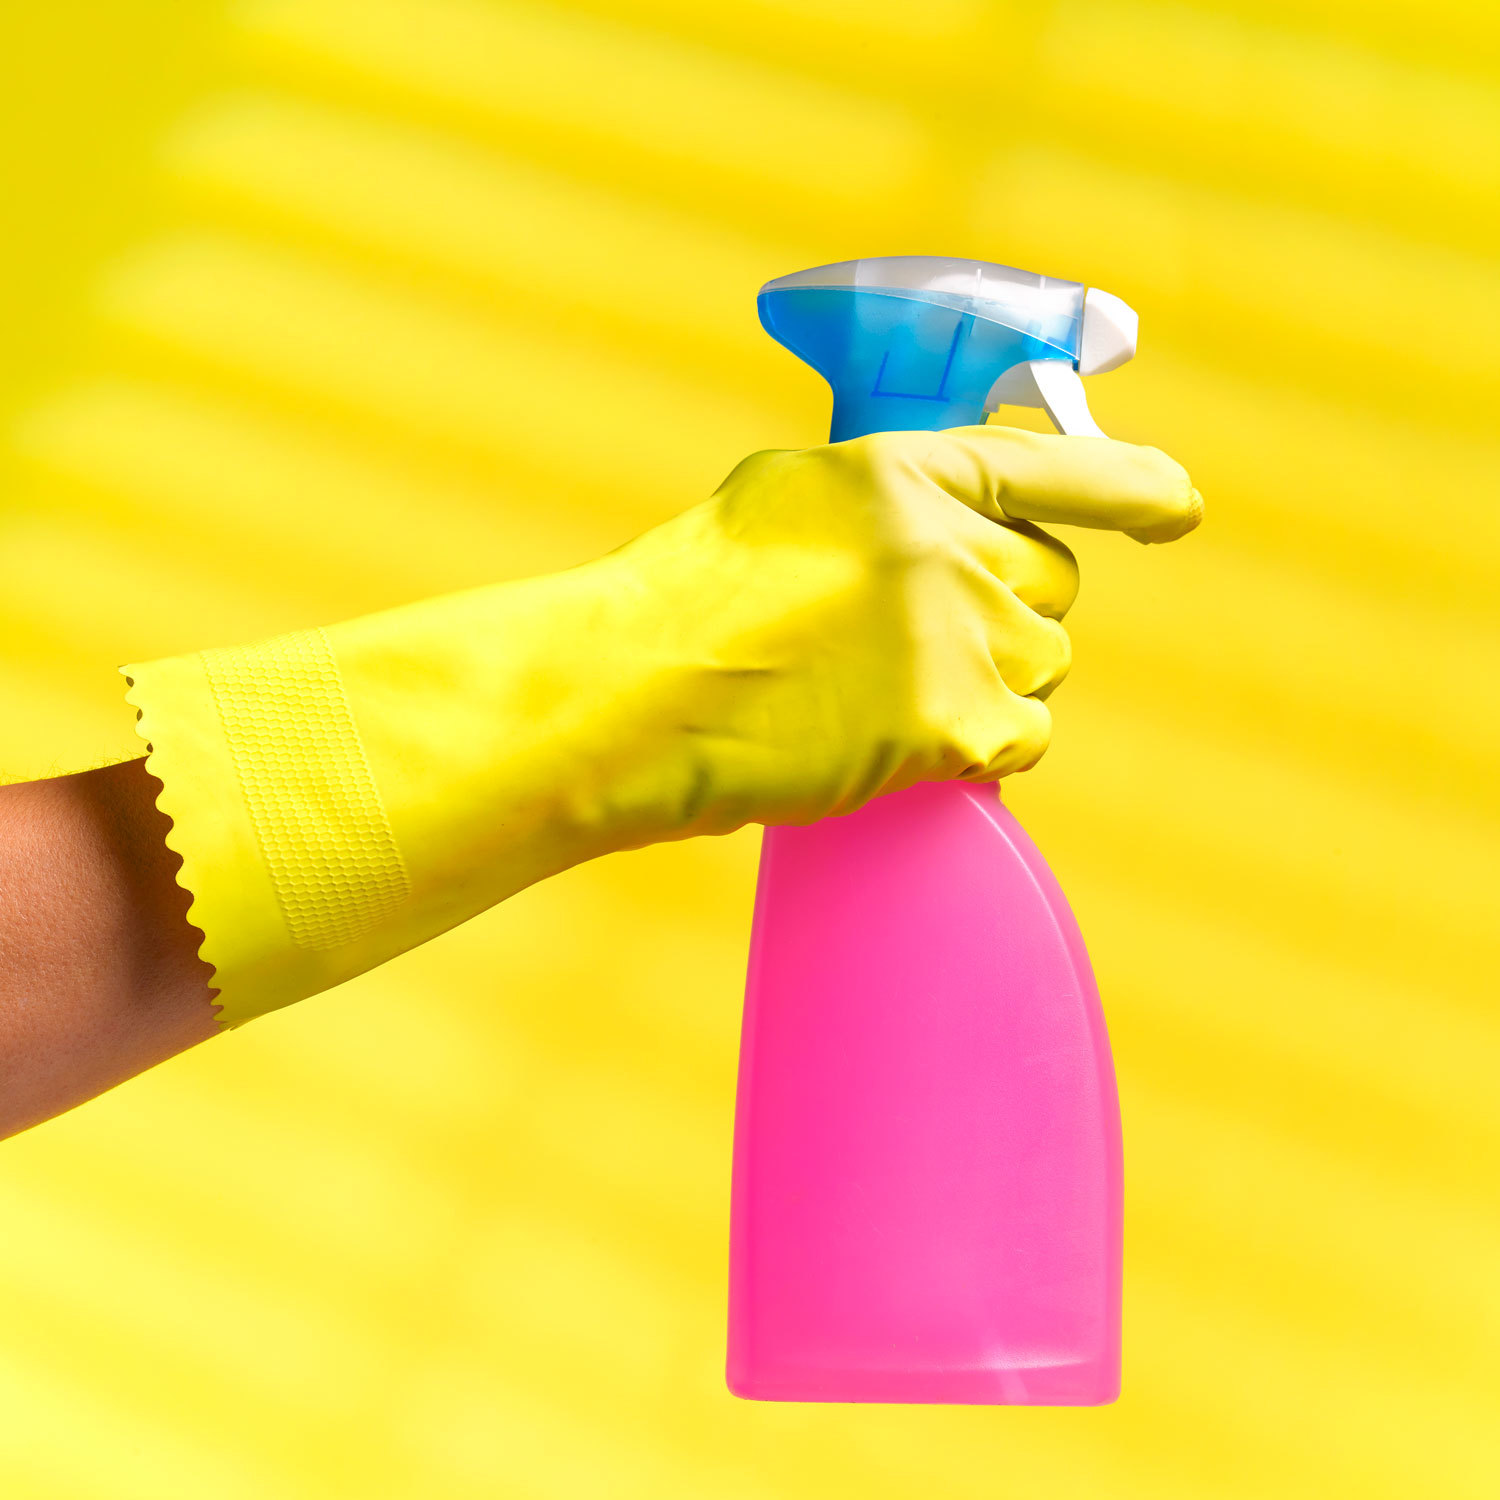 Cleaning gloved hand holding pink spray bottle on a yellow background